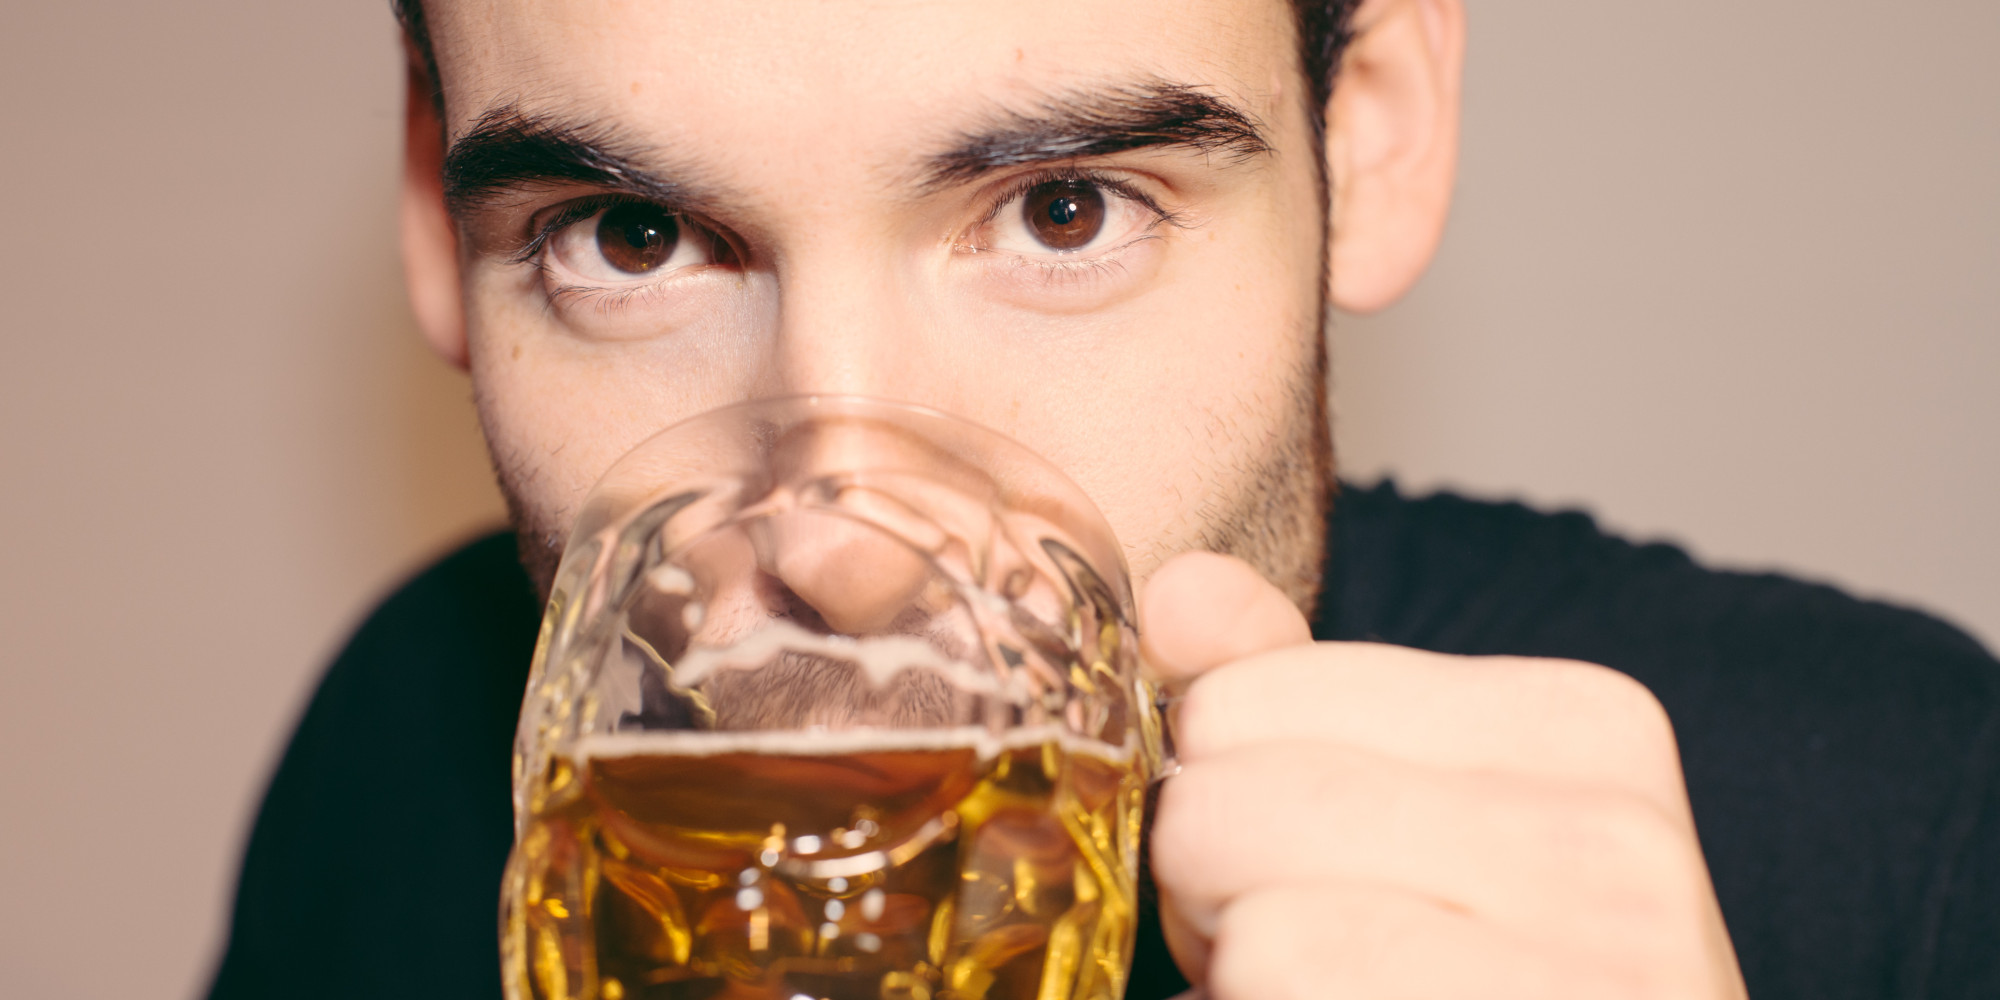 Heavy Drinking, Smoking And Overeating Are Blamed For ...